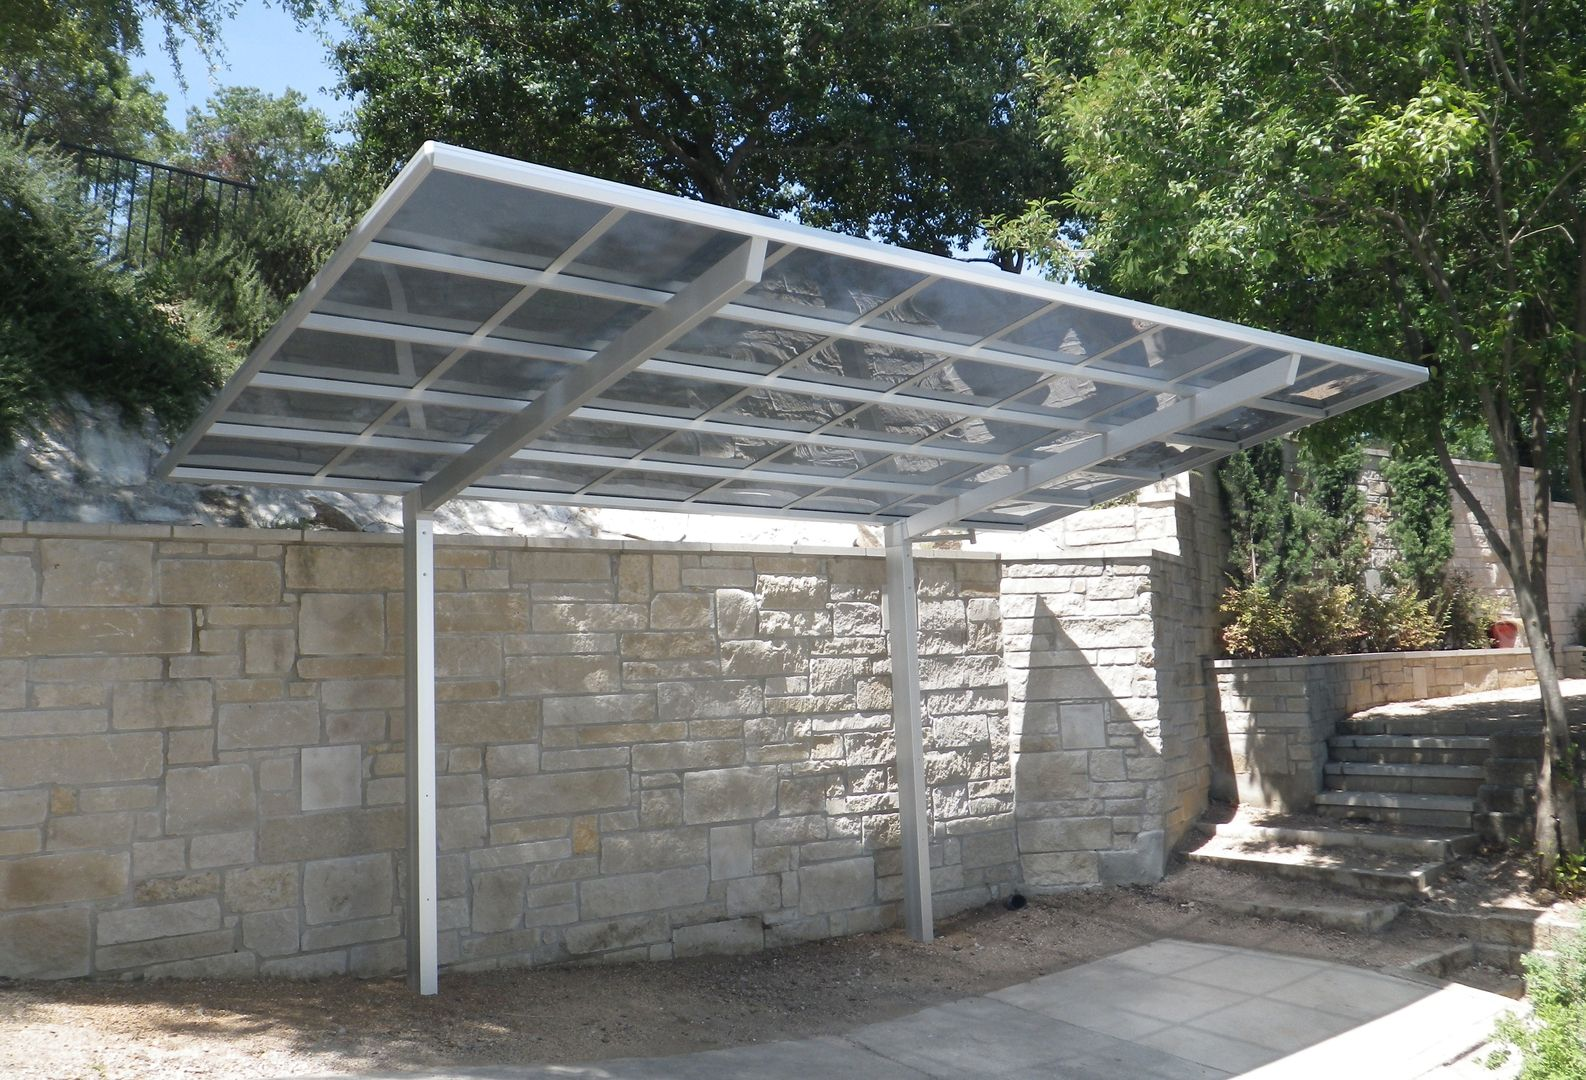 Premiumquality modern carports & awnings for residential